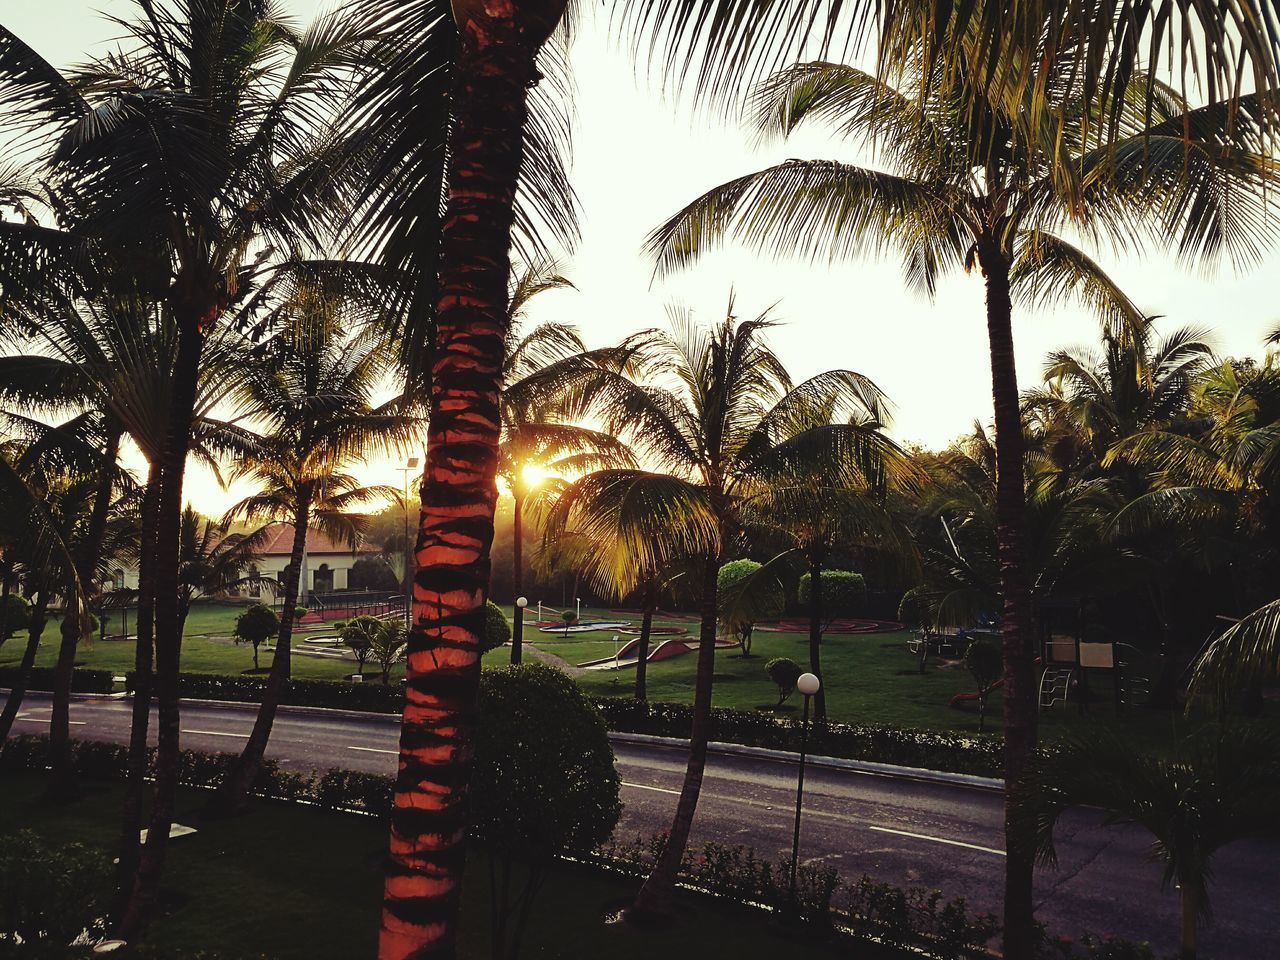 Palm Tree Beauty In Nature Sky Happiness♥ Dominican Republic Vacations Easylikesundaymorning Bestmorningever Sunrise